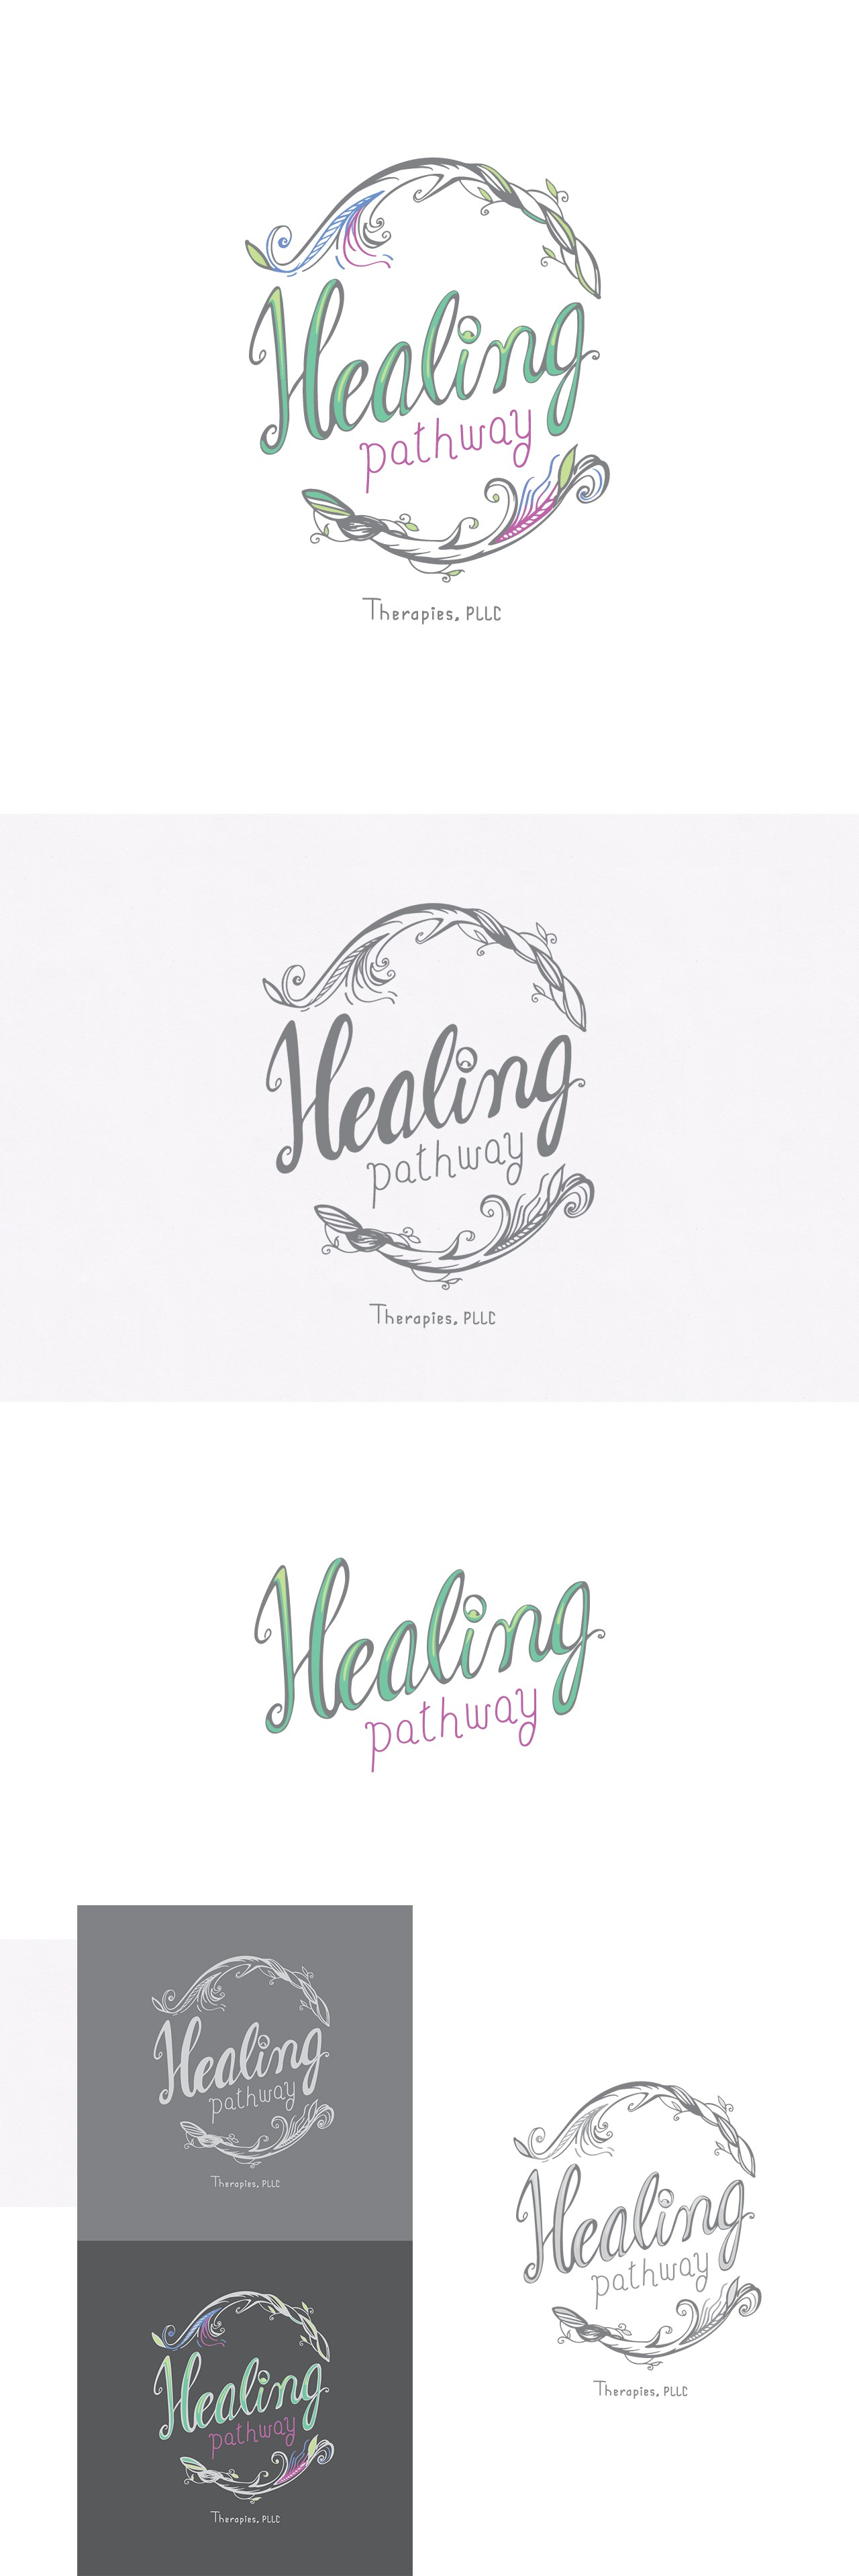 Helping people with your art- create a logo for Healing Pathway Therapies